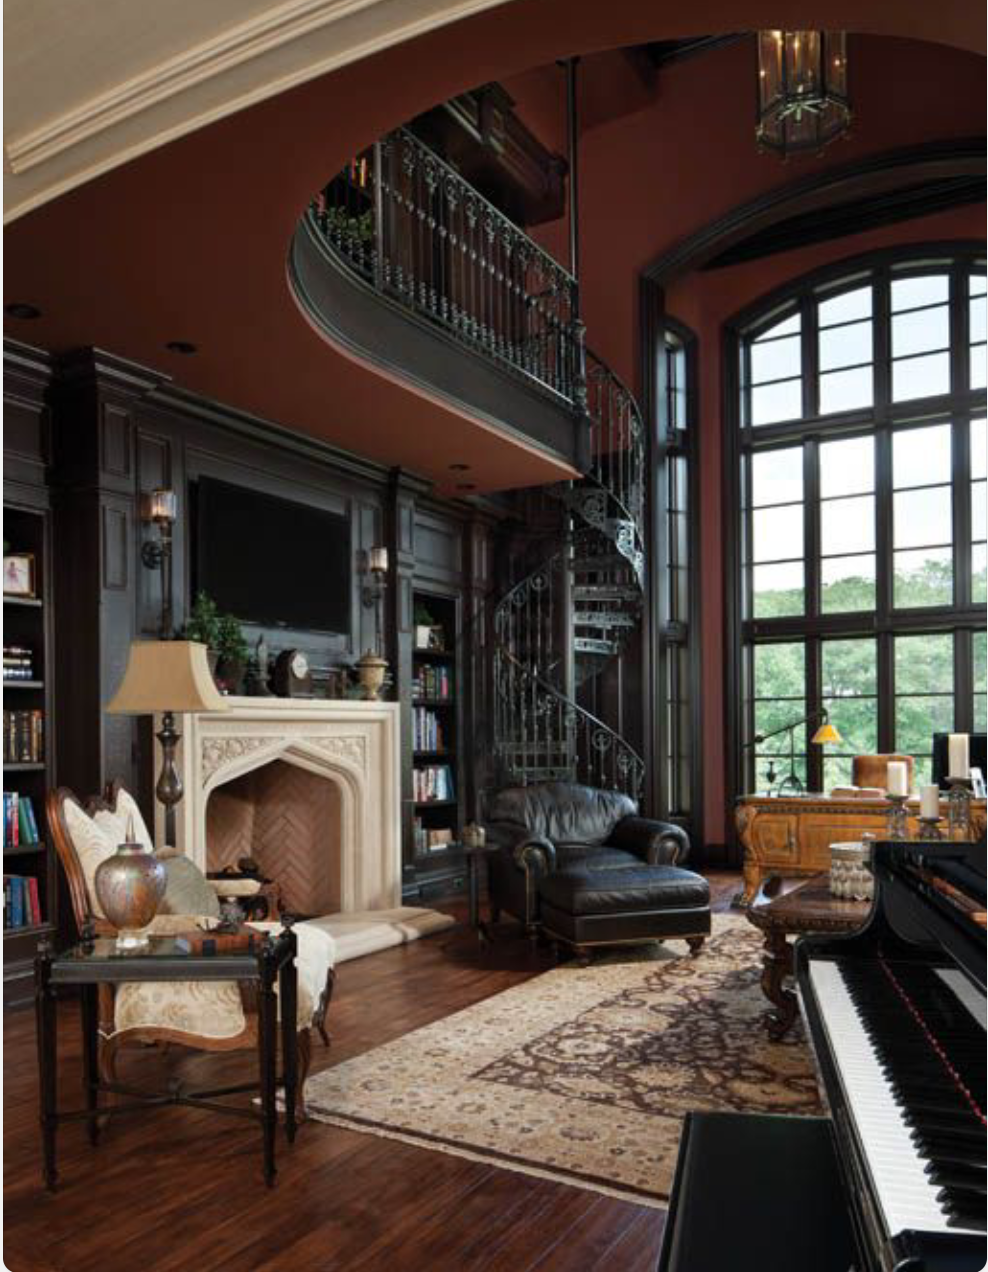 Home Library ~ 2 Story With Spiral Staircase, Fireplace, And Large Arched  Window